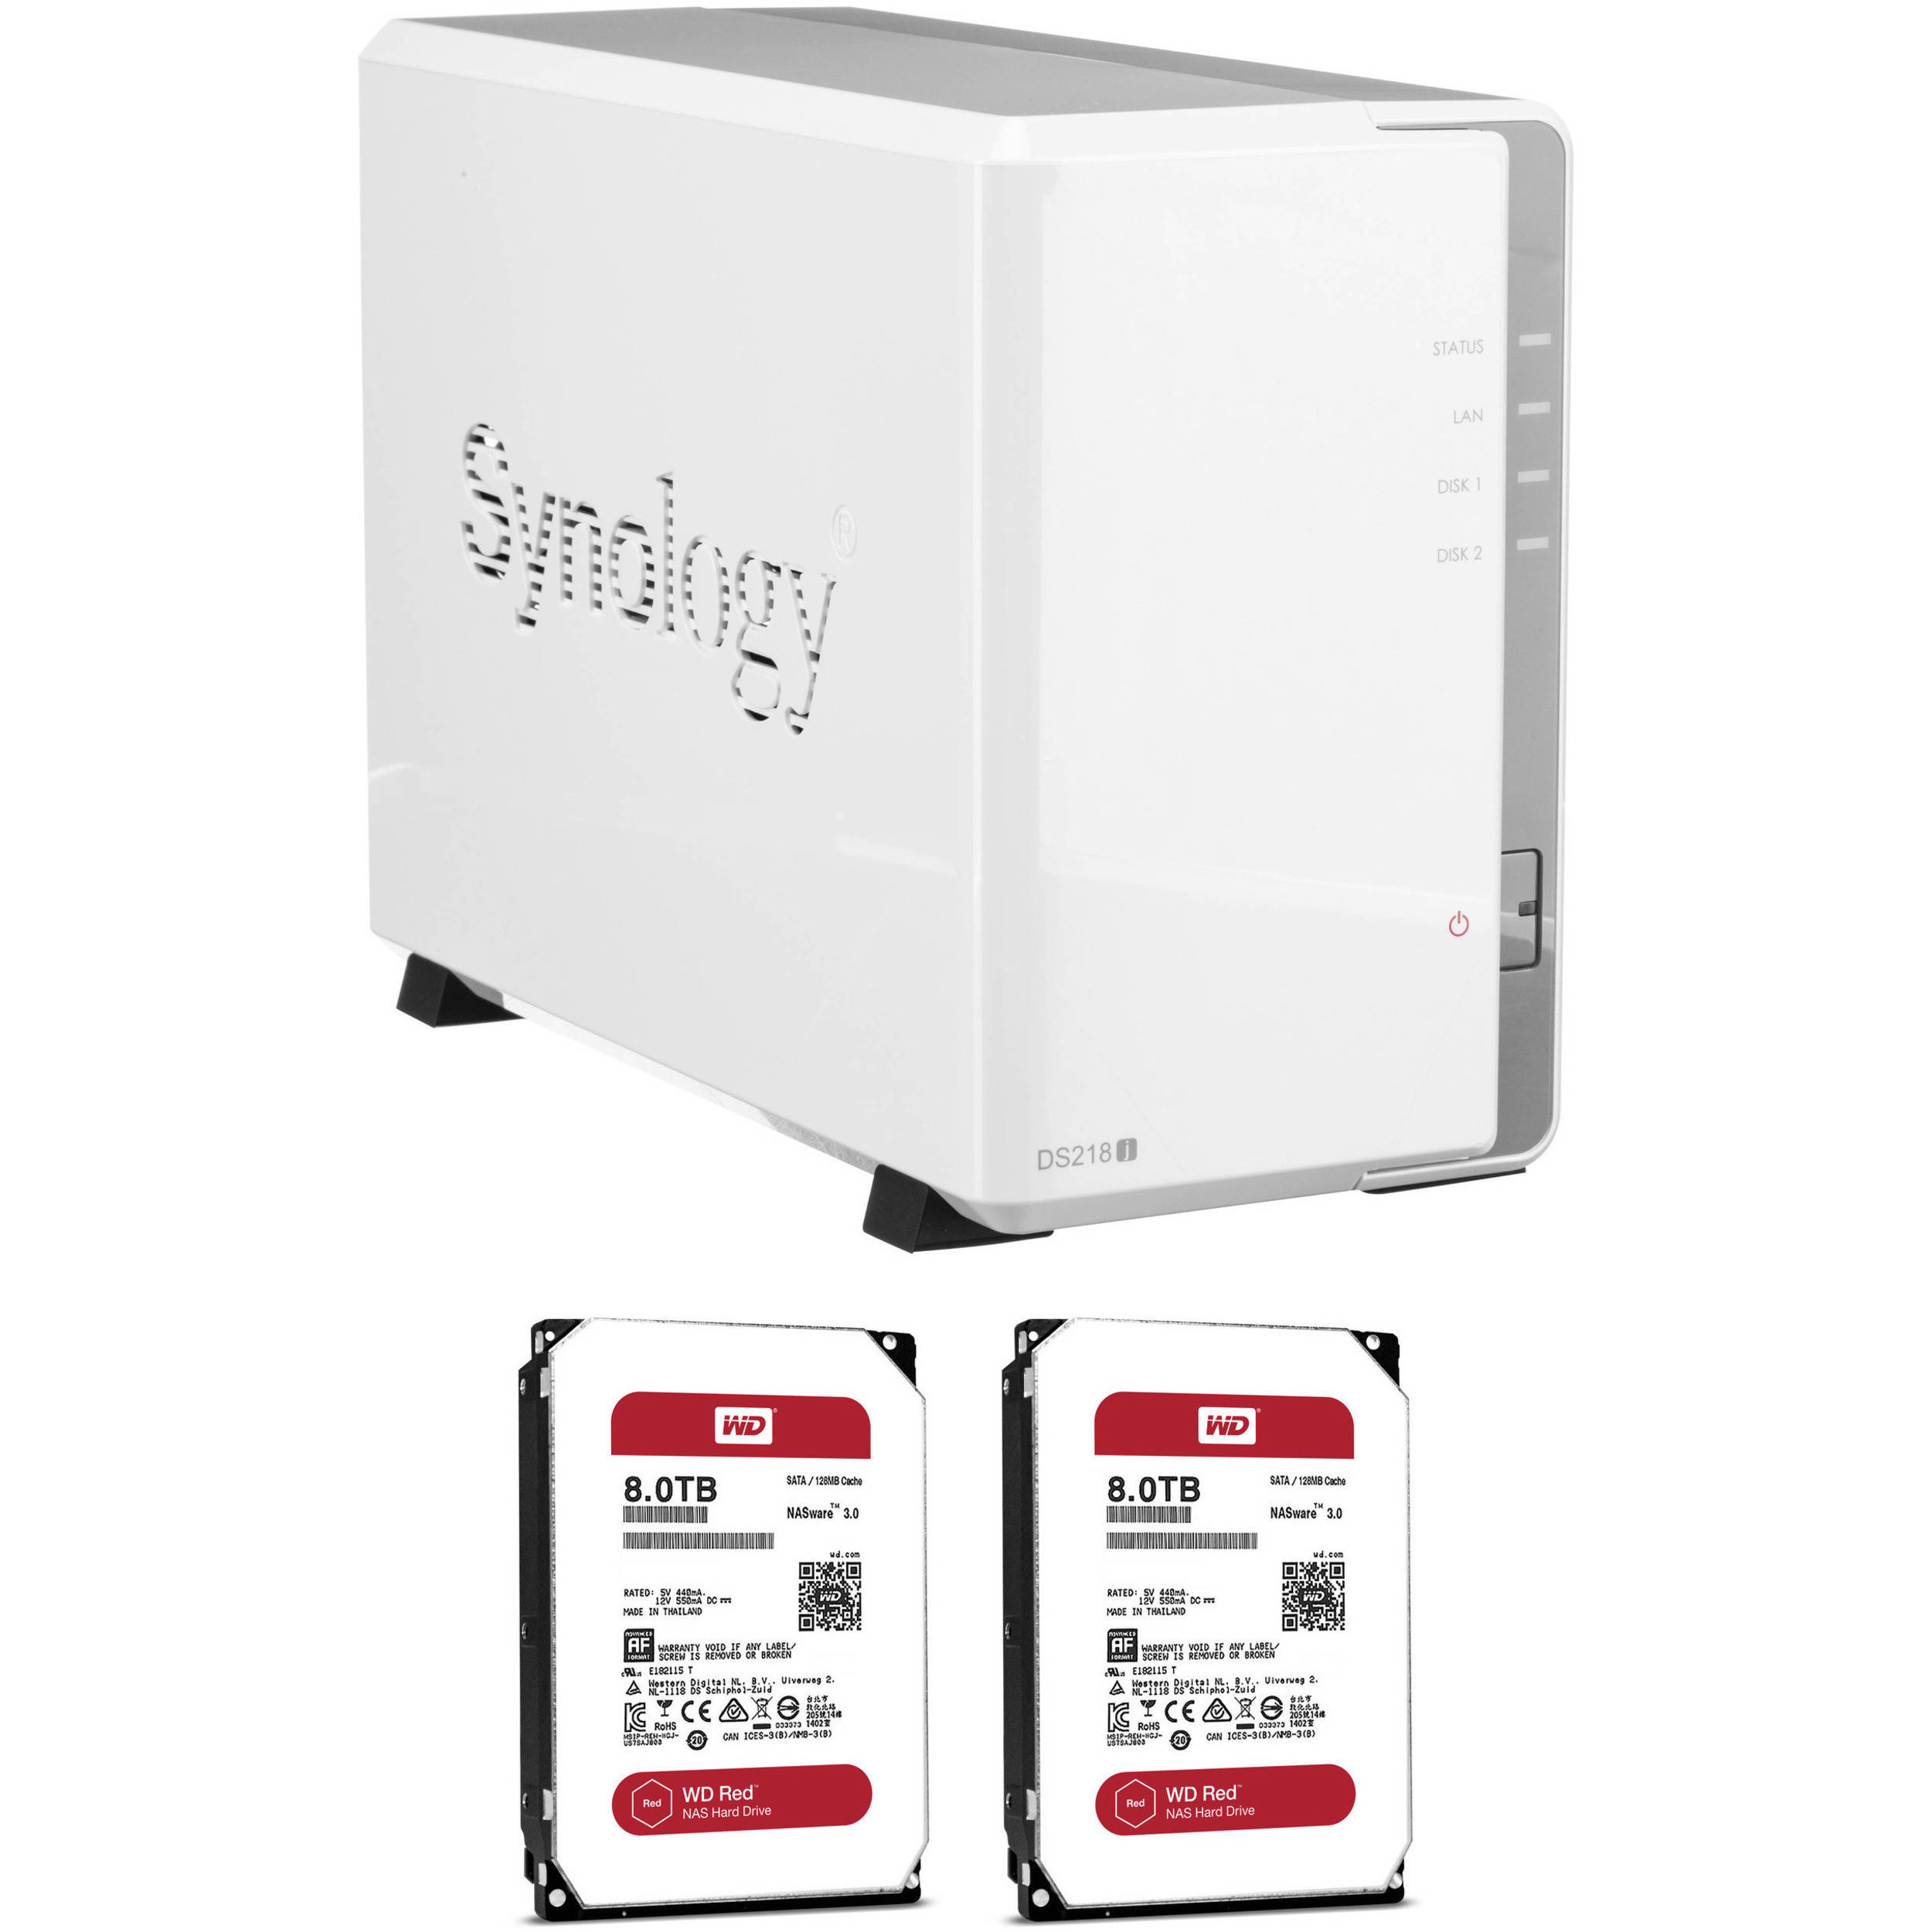 Synology DiskStation 16TB DS218j 2-Bay NAS Enclosure Kit with WD NAS Drives  (2 x 8TB)